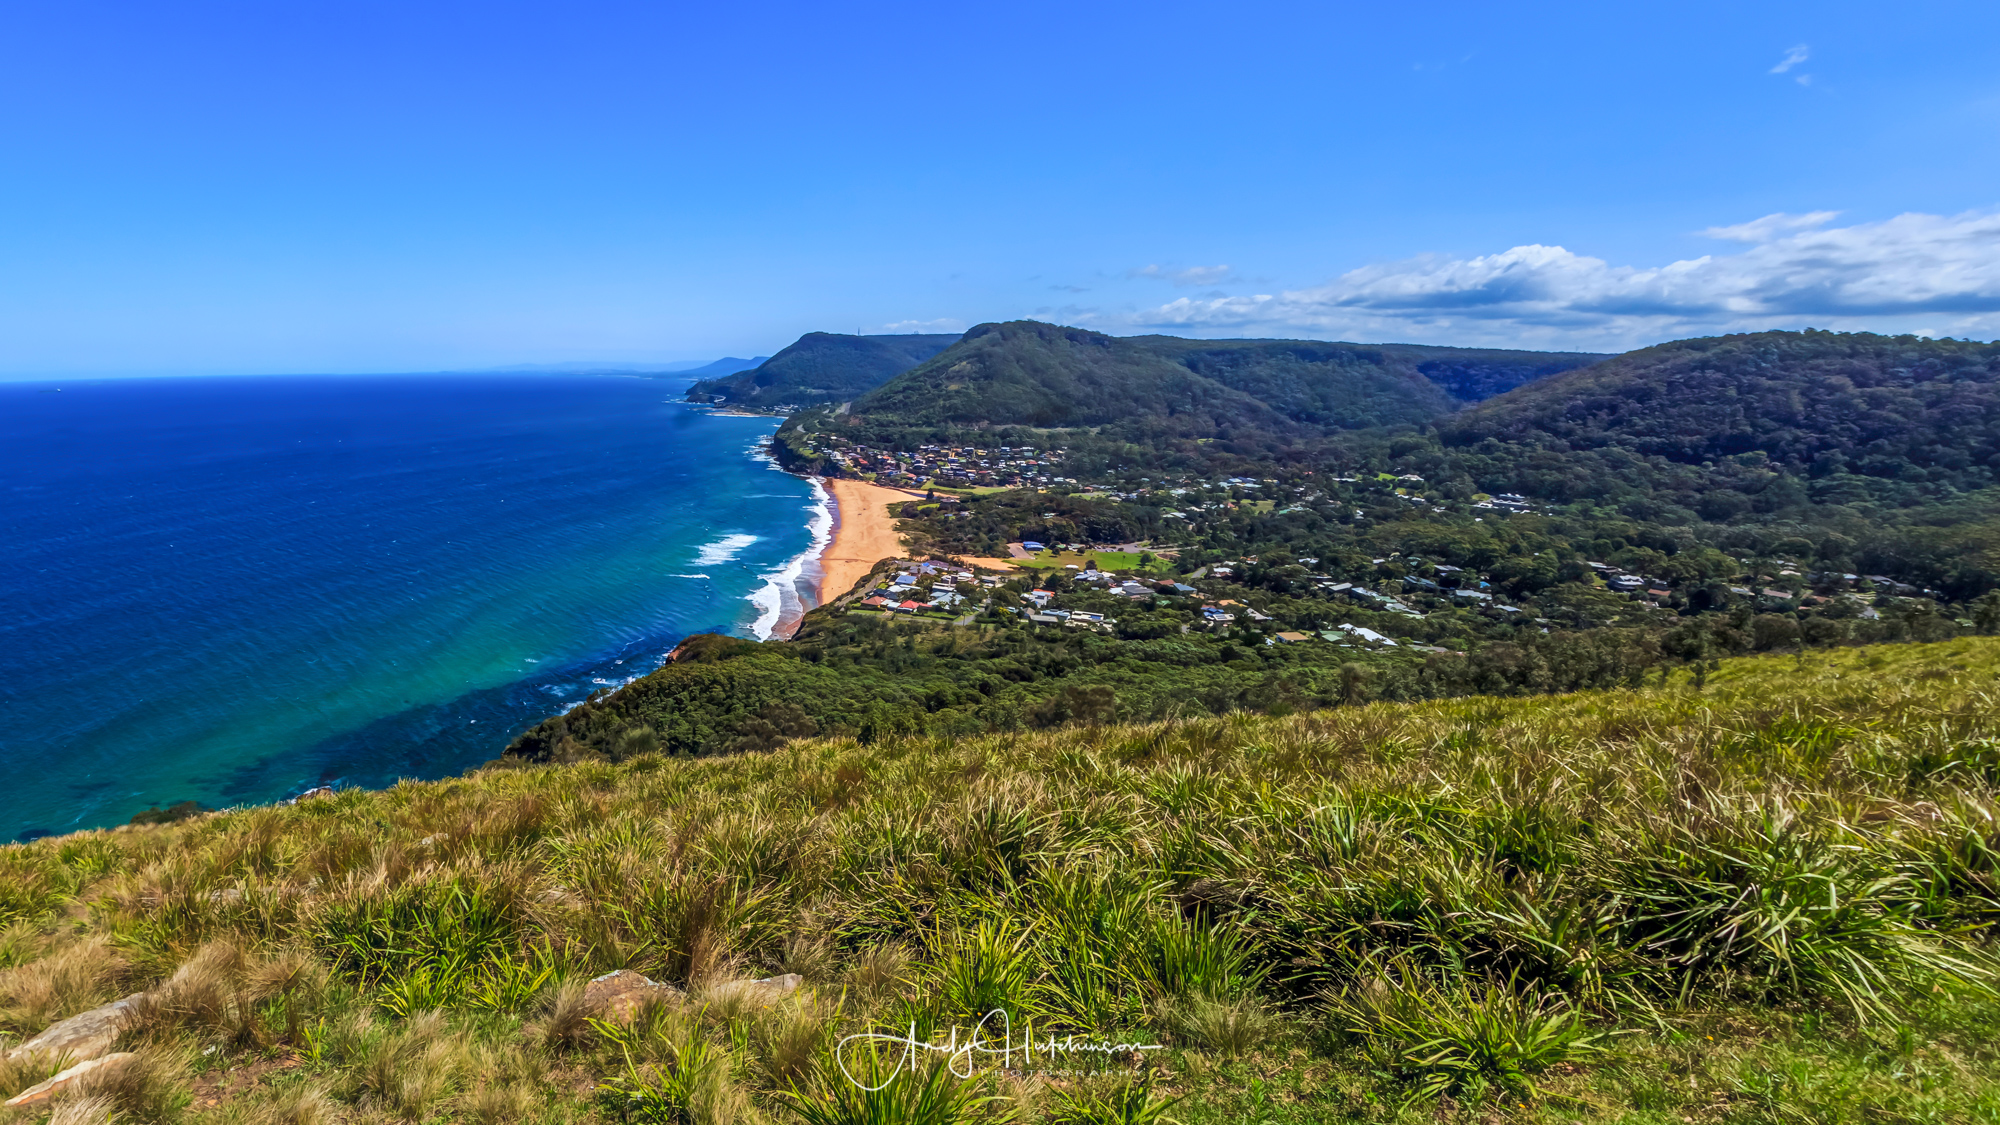 Bald Hill at Stanwell Tops is definitely one of the primo lookouts on the whole coast and a popular adventure sports location too.